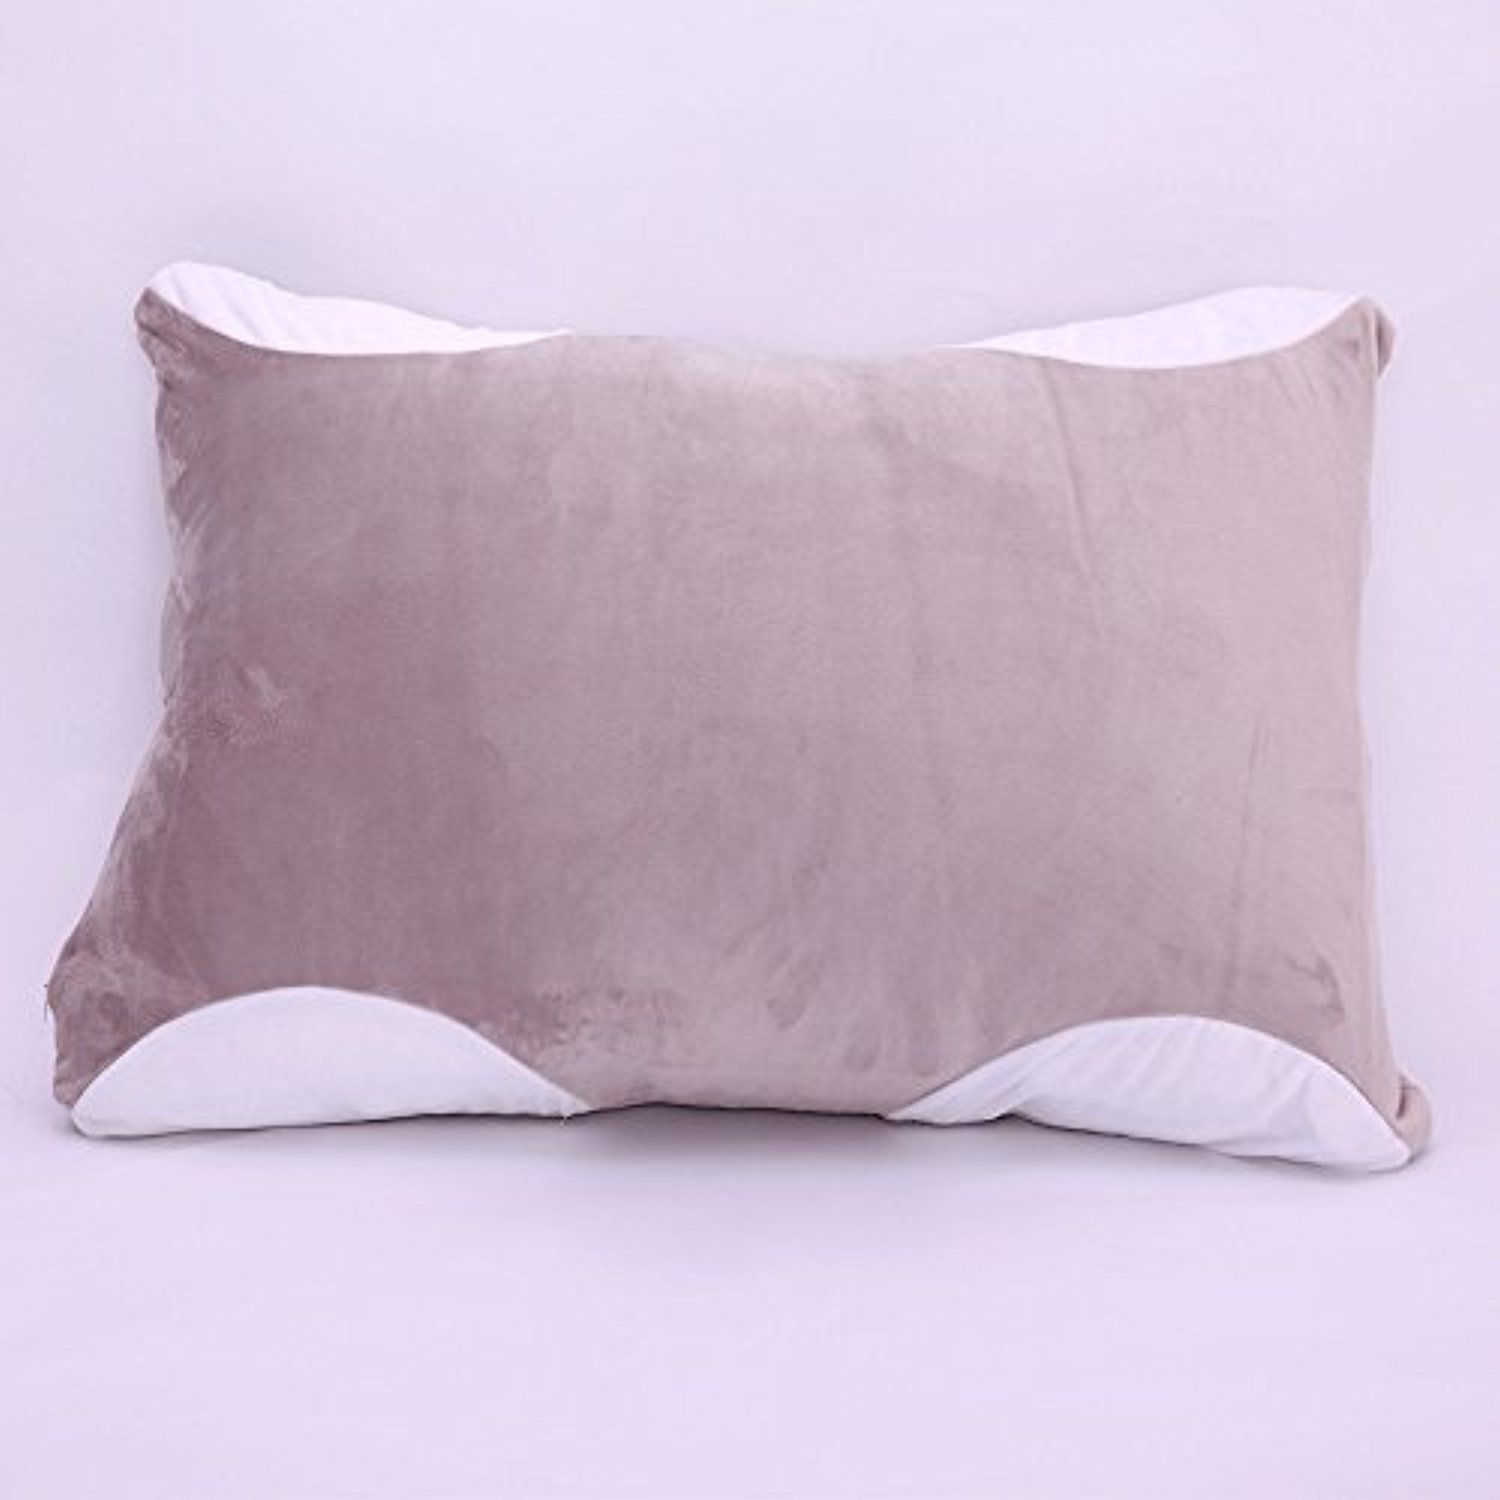 Dust Mite Pillow Covers Brilliant Btwzm 2 Pack Luxury Zippered Queen Pillow Protector Covers  Unique 2018